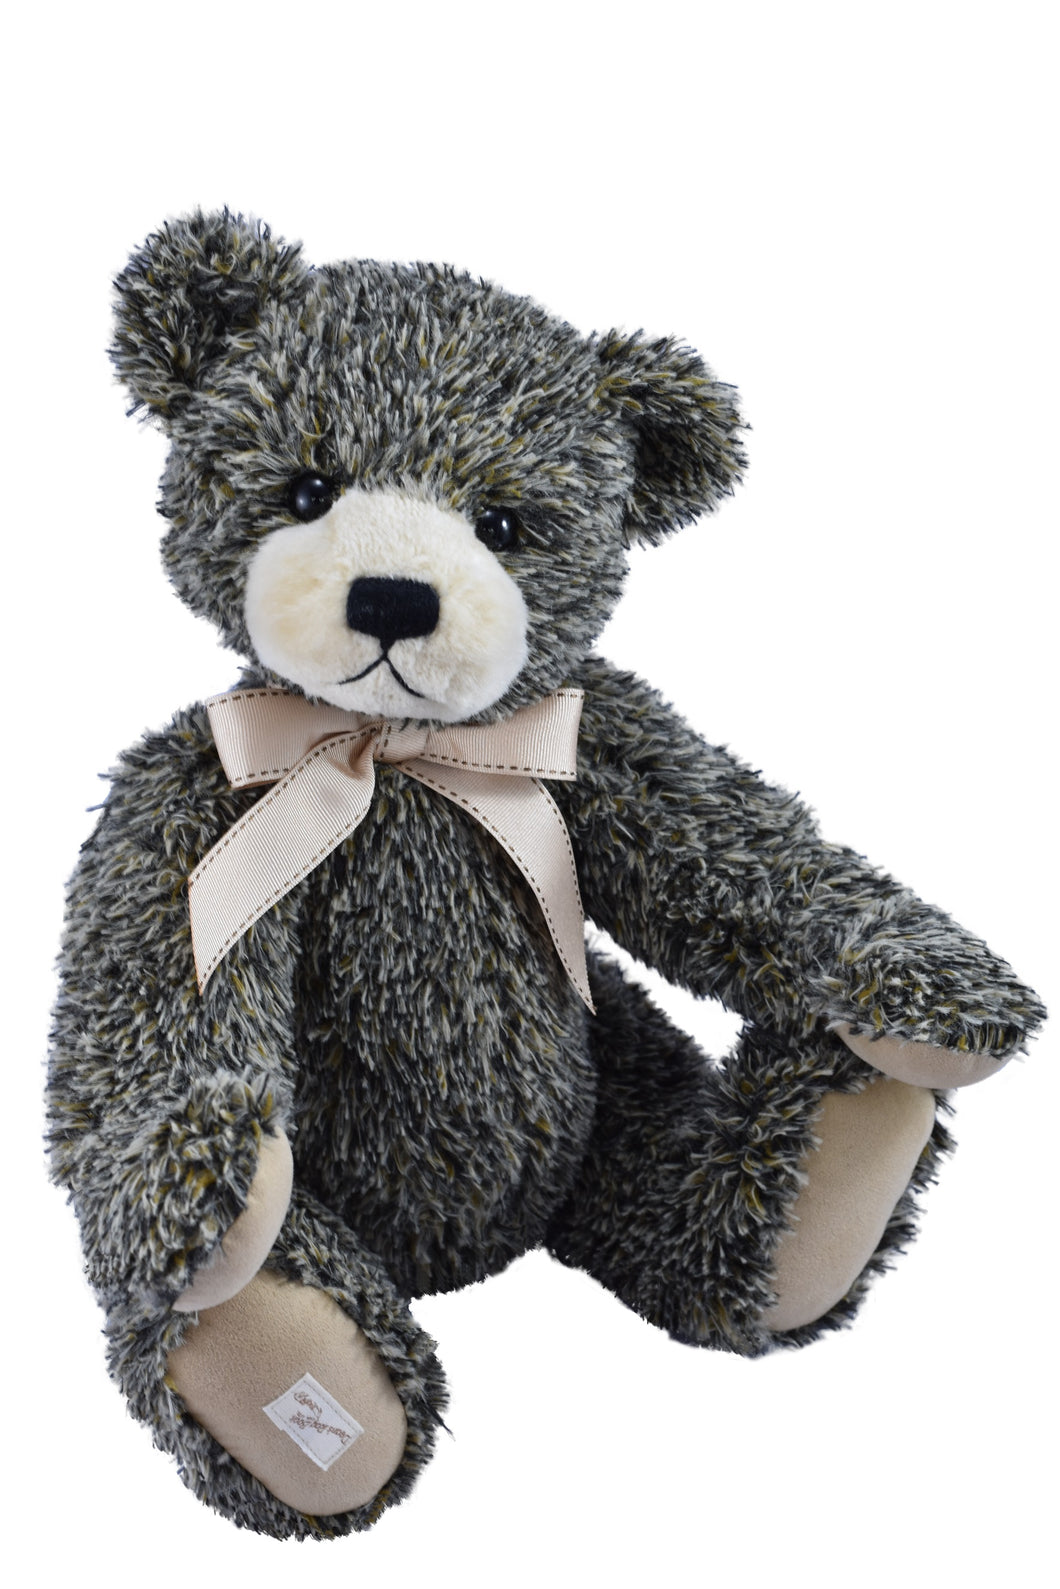 TEDDY KENZIO / DEAN'S PLUSH LIMITED BEAR